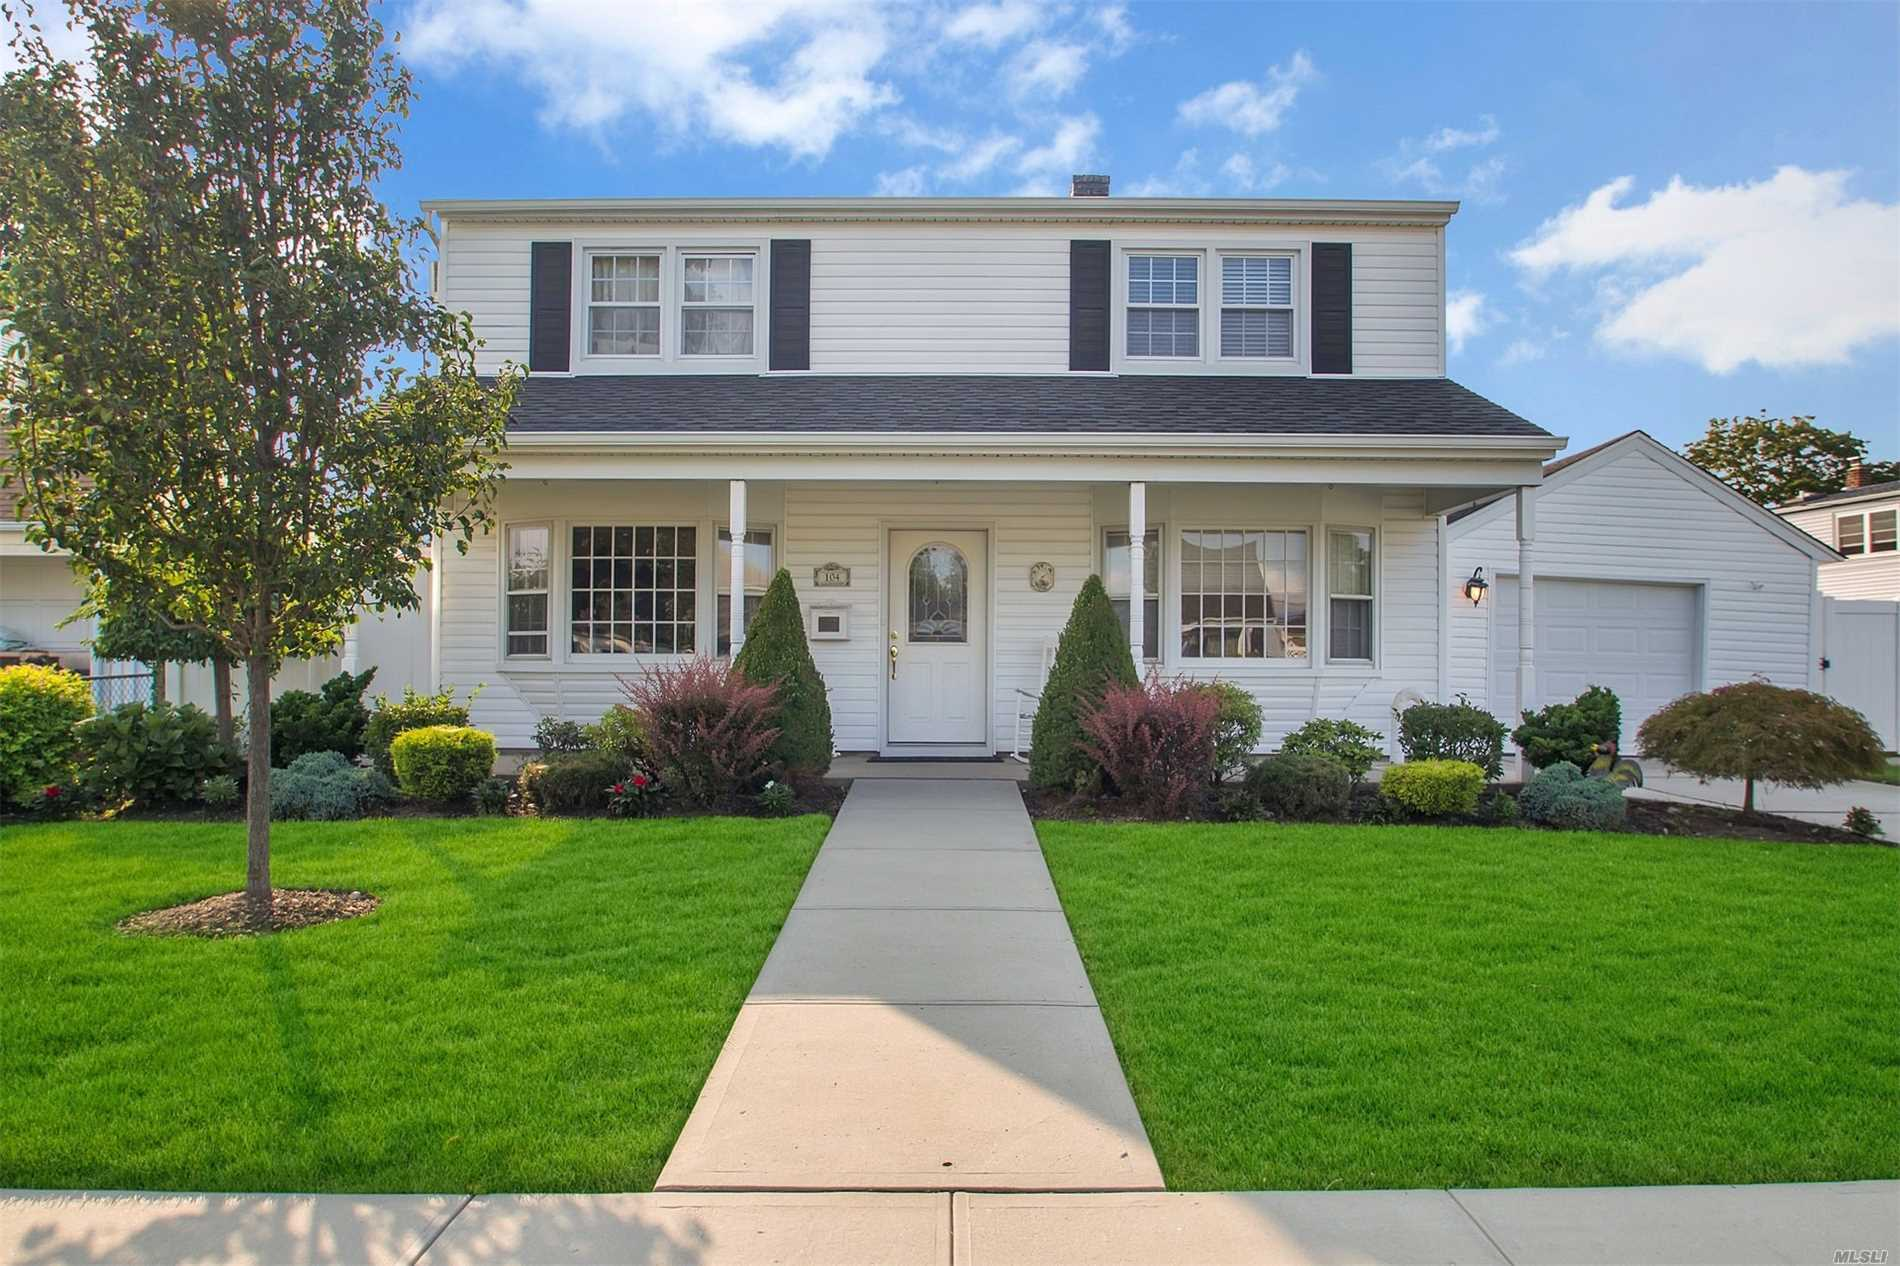 Beautiful Colonial, 4 Bedrooms, 2 Full Bathrooms, Possible 5th Bedroom Or Office, Eik With Stainless Steel Appliances, Formal Dining Room, Great Room With Fireplace, Sliders To Back Yard, 2 Year Old Hot Water Oil Boiler System, Oversized Garage, Nice Porch. A Must See!